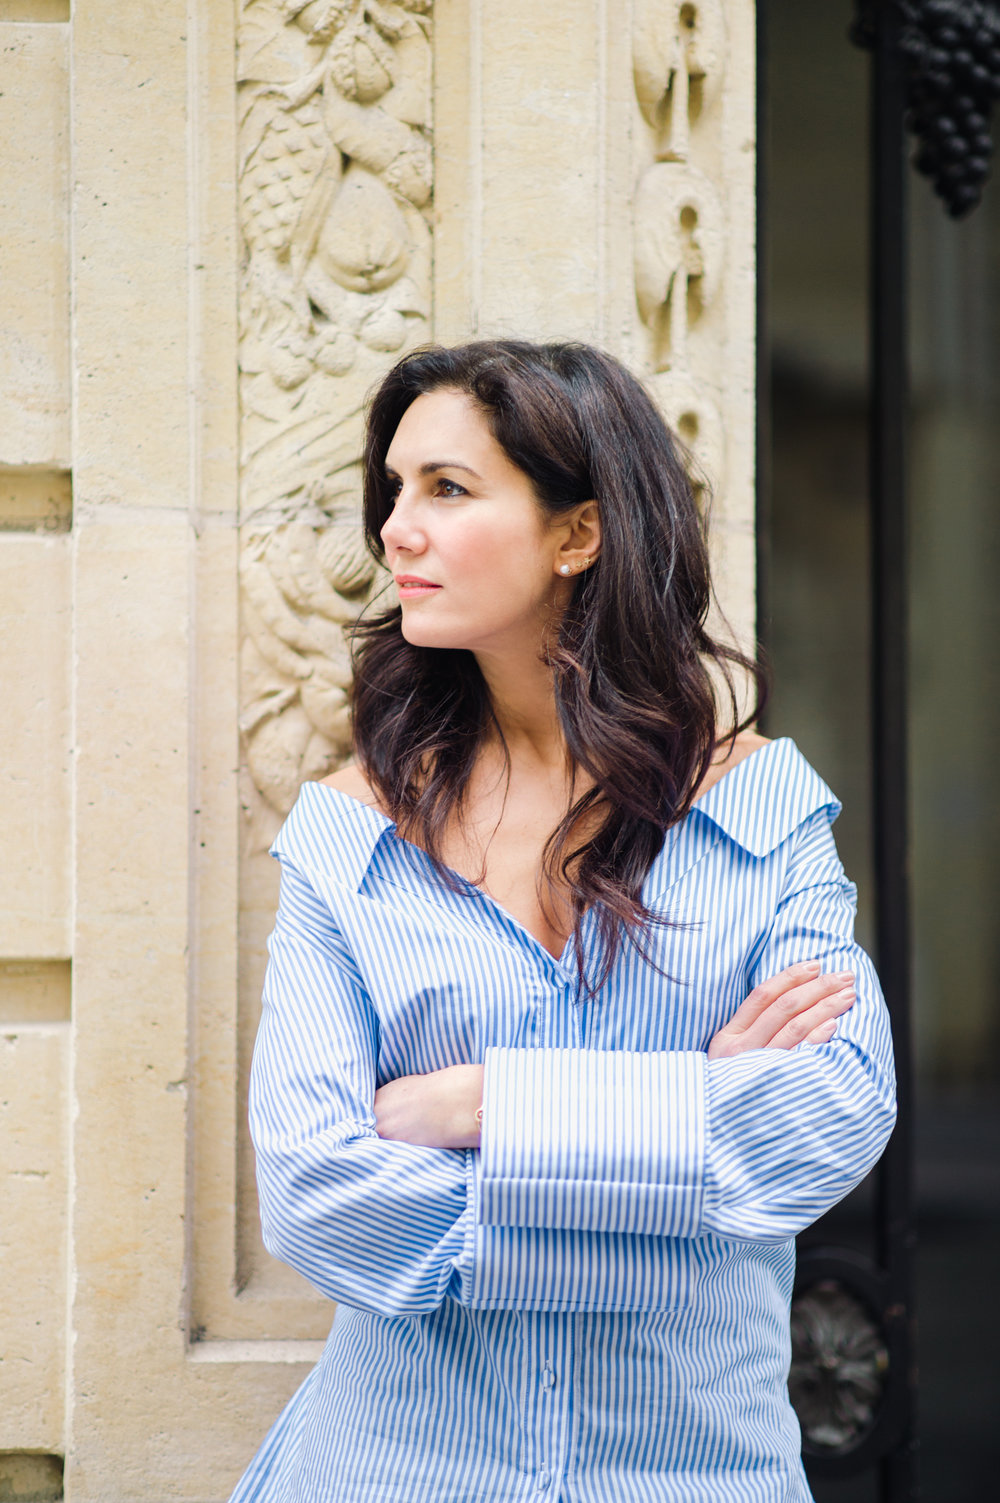 Elisabeth-Jones-Hennessy-Blue-Shirting-Menswear-Shopping-Paris-02